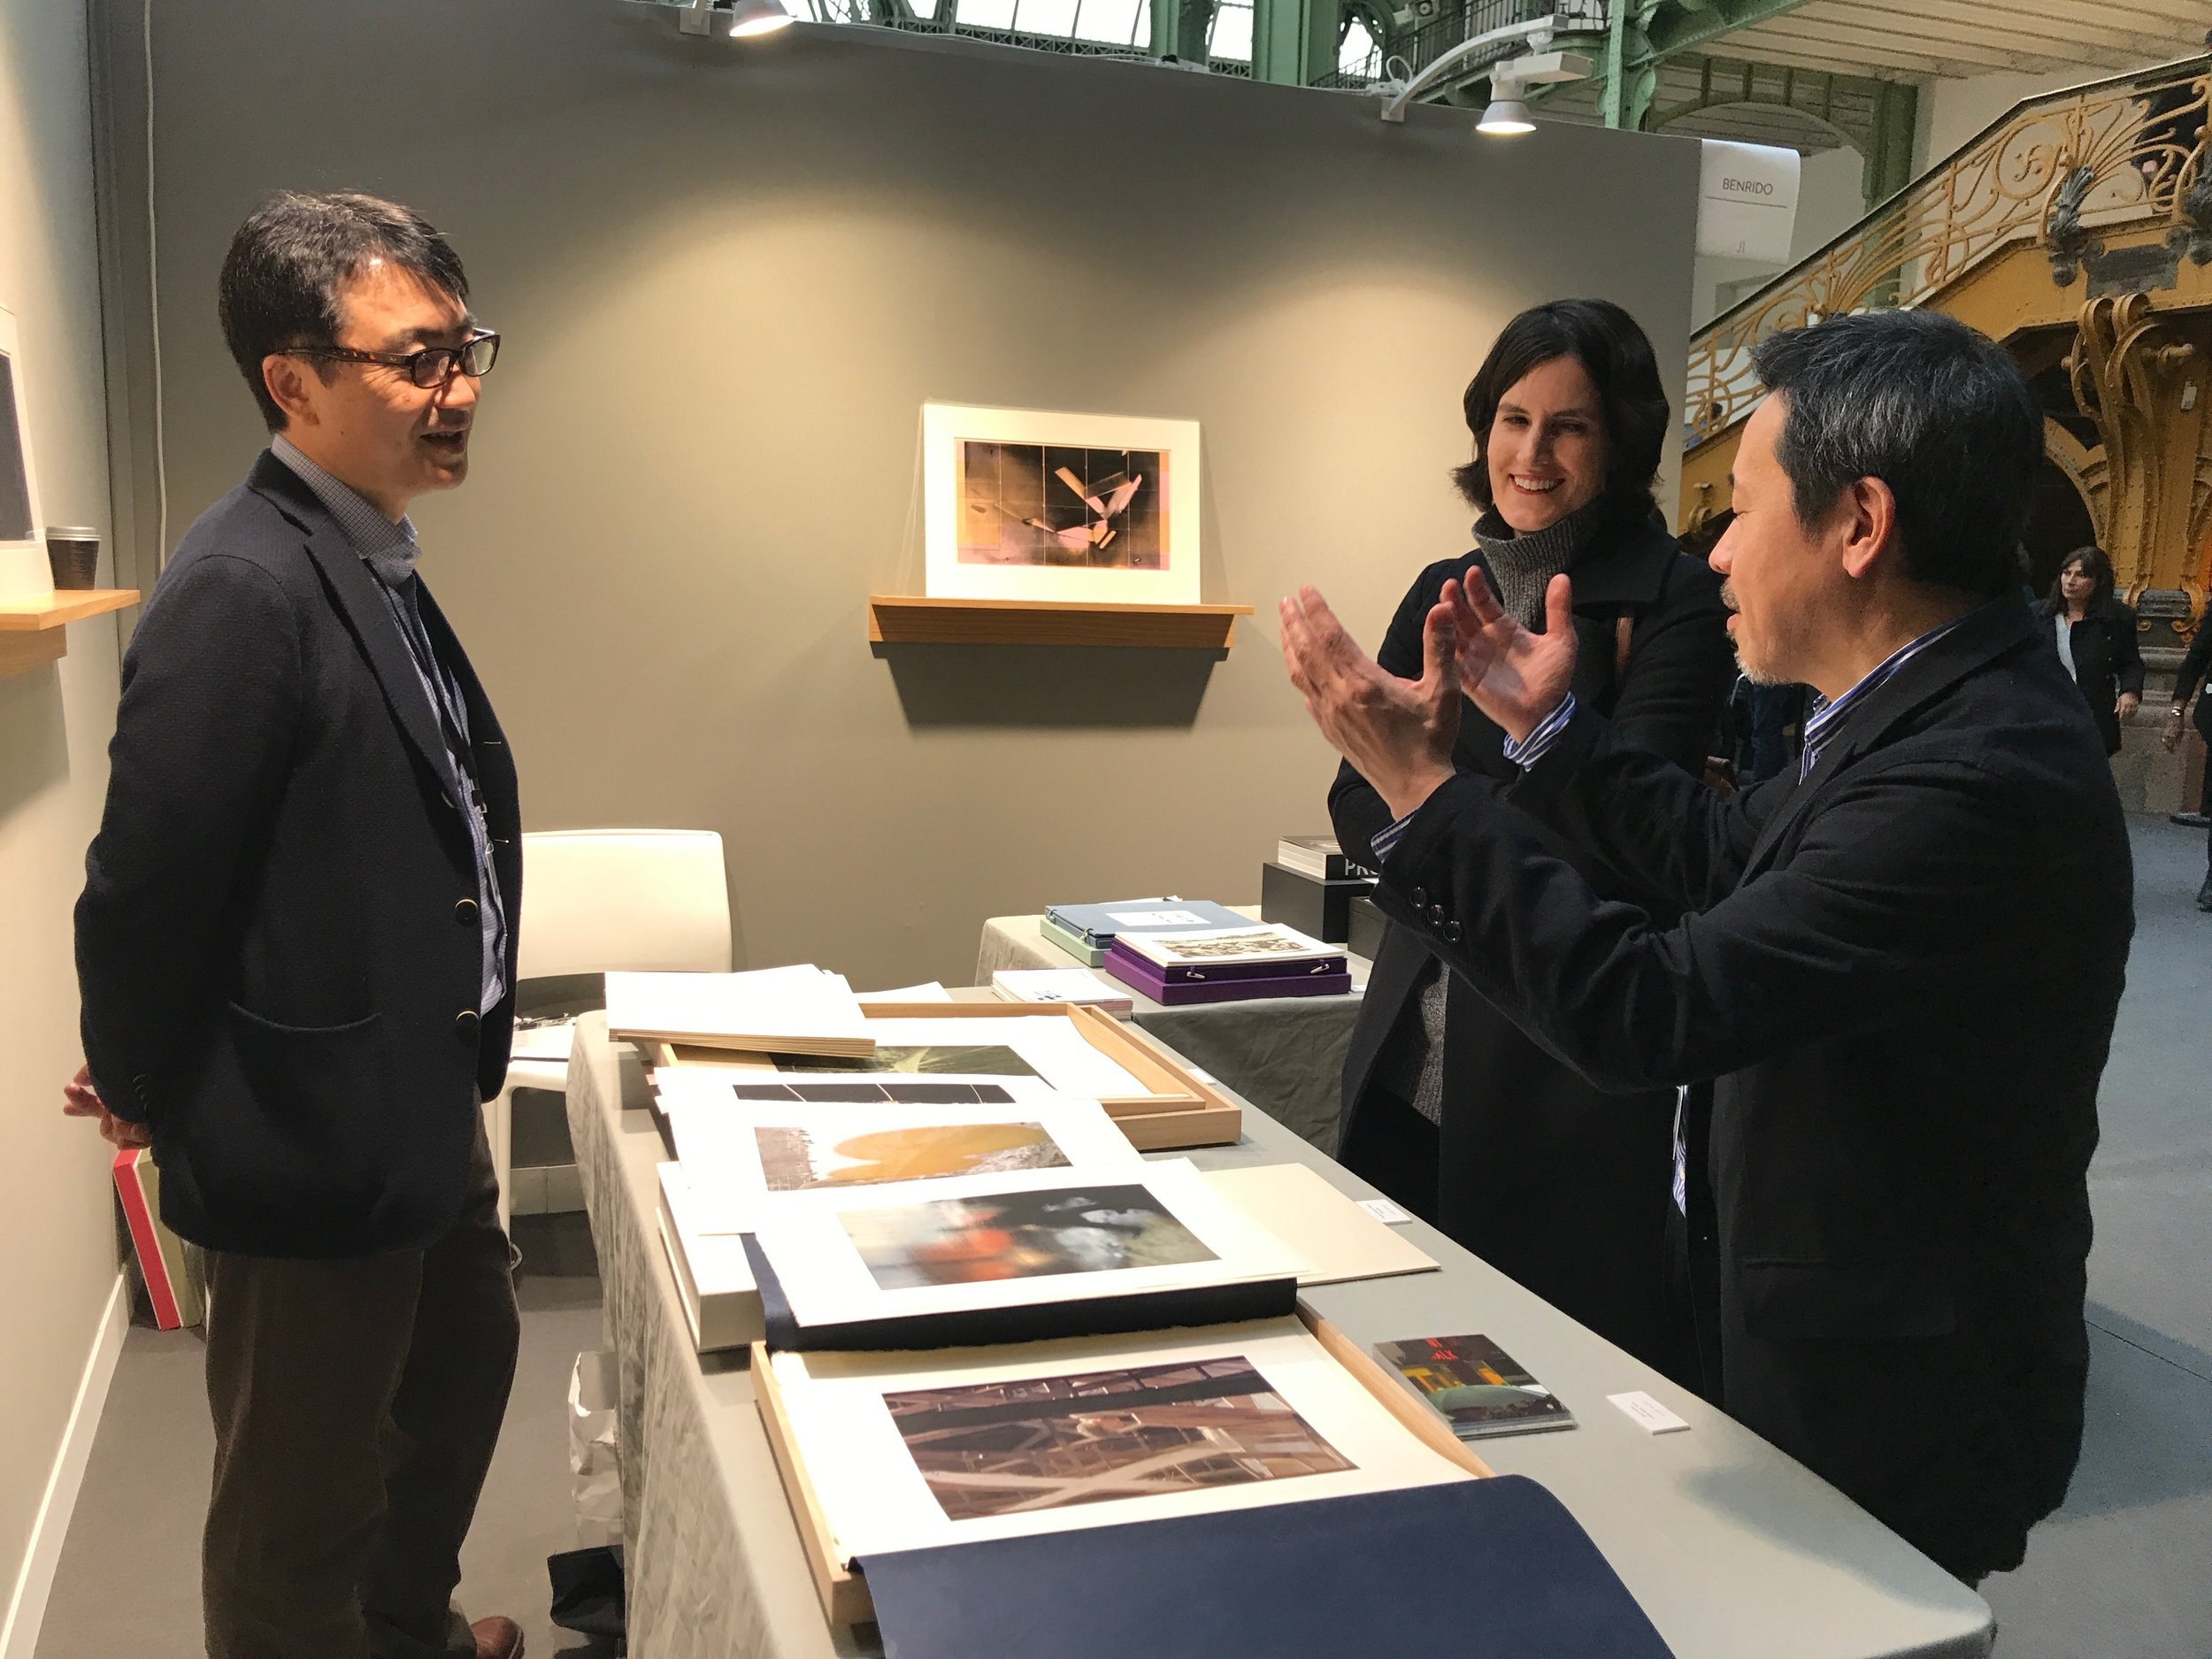 Benrido's CEO Takumi Suzuki (left), Margit Erb, Director of the Saul Leiter Foundation (centre) and Taka Kawachi, Overseas Division Director of Benrido (right)